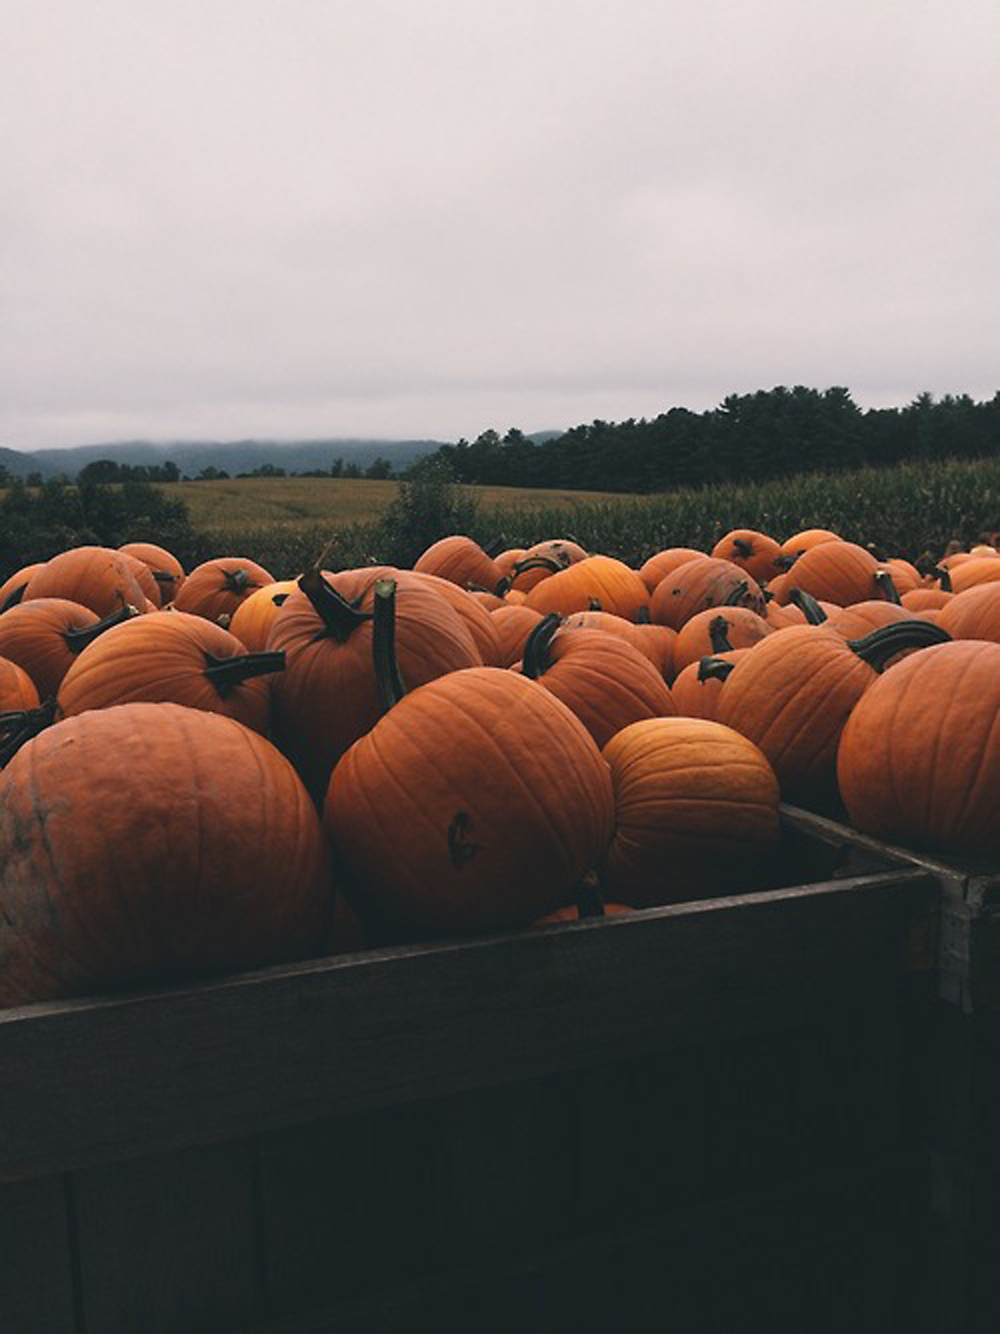 pumpkins preferably self picked pumpkins are a must - via  tumblr